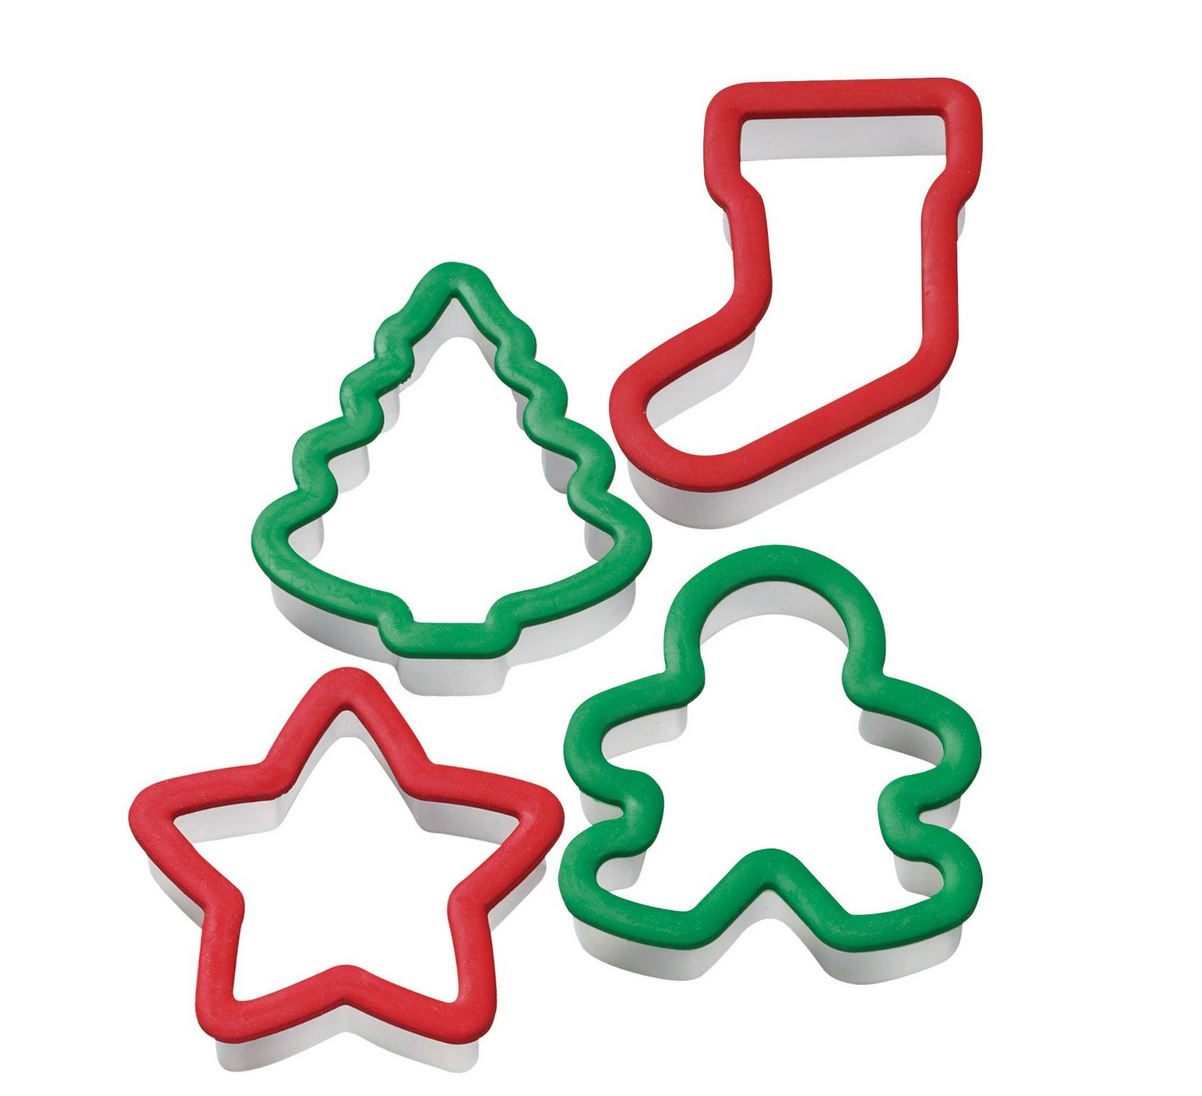 Wilton Holiday Grippy Cookie Cutters (Set of 4) for only $4.49 + More!